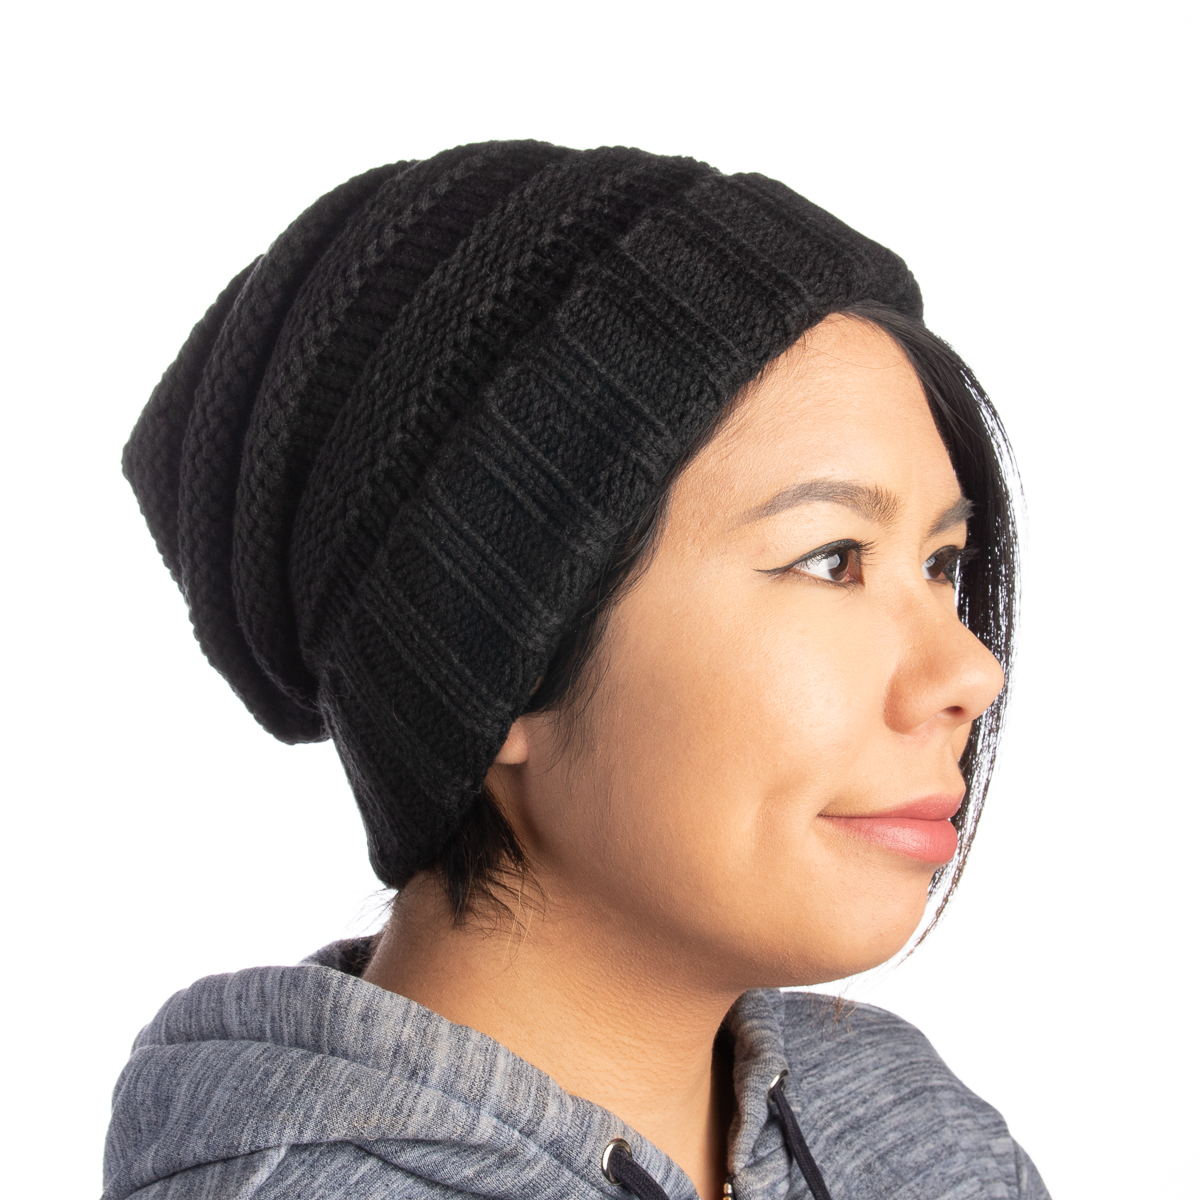 Womens-Slouchy-Ribbed-Knit-Chunky-Beanie-Winter-Hat-Warm-Cute-Lightweight-Chic thumbnail 12